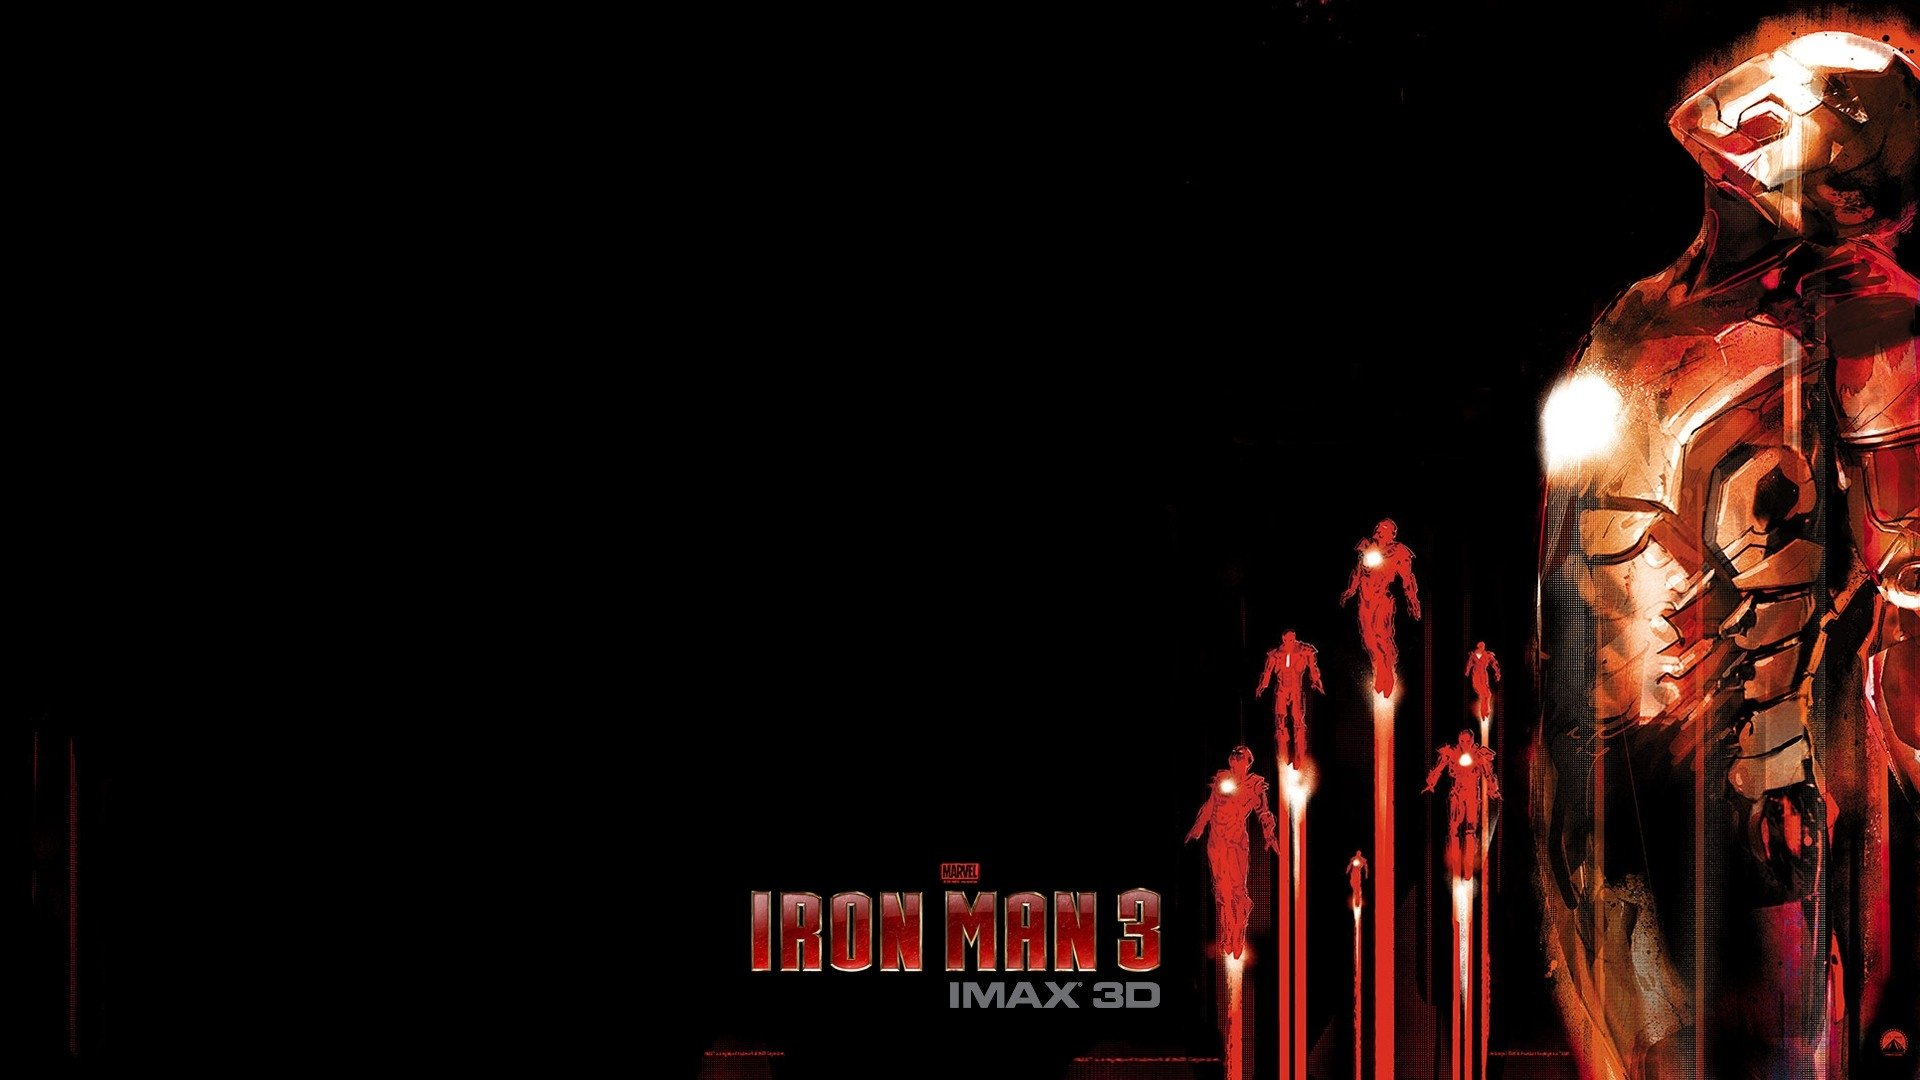 Iron Man Wallpapers Full Hd Desktop Background: Download Iron Man 3 Full HD Wallpapers Gallery